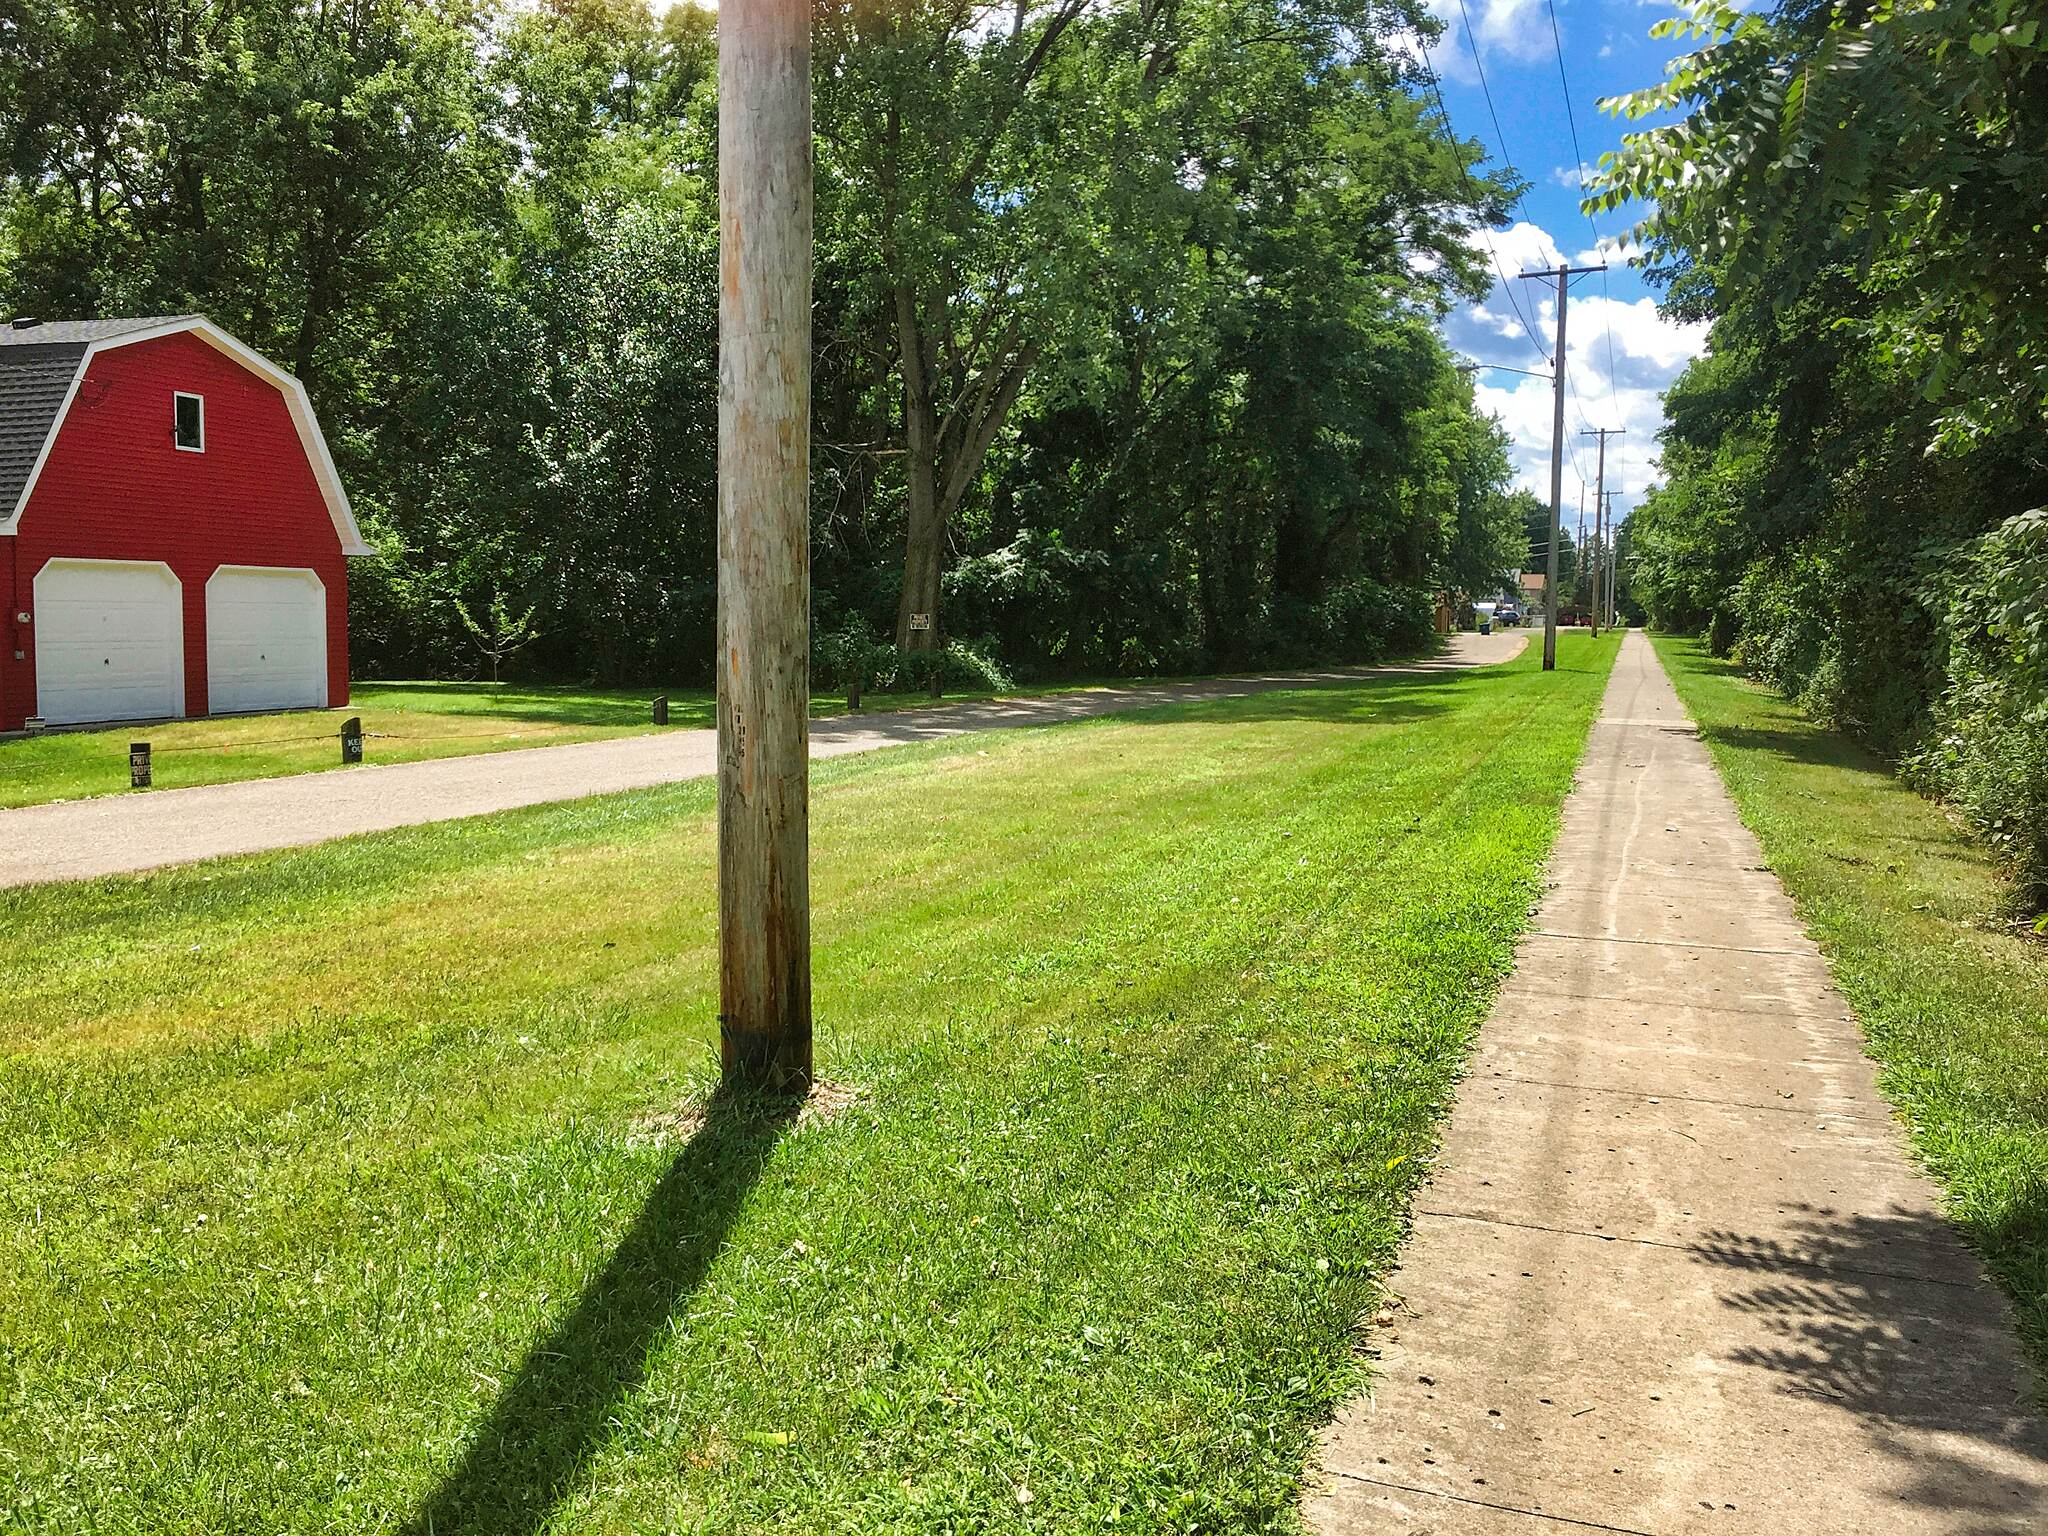 Newton Falls Trail Heading South Here is a view of the Newton Falls Trail heading south along High Street.  August 5, 2017.